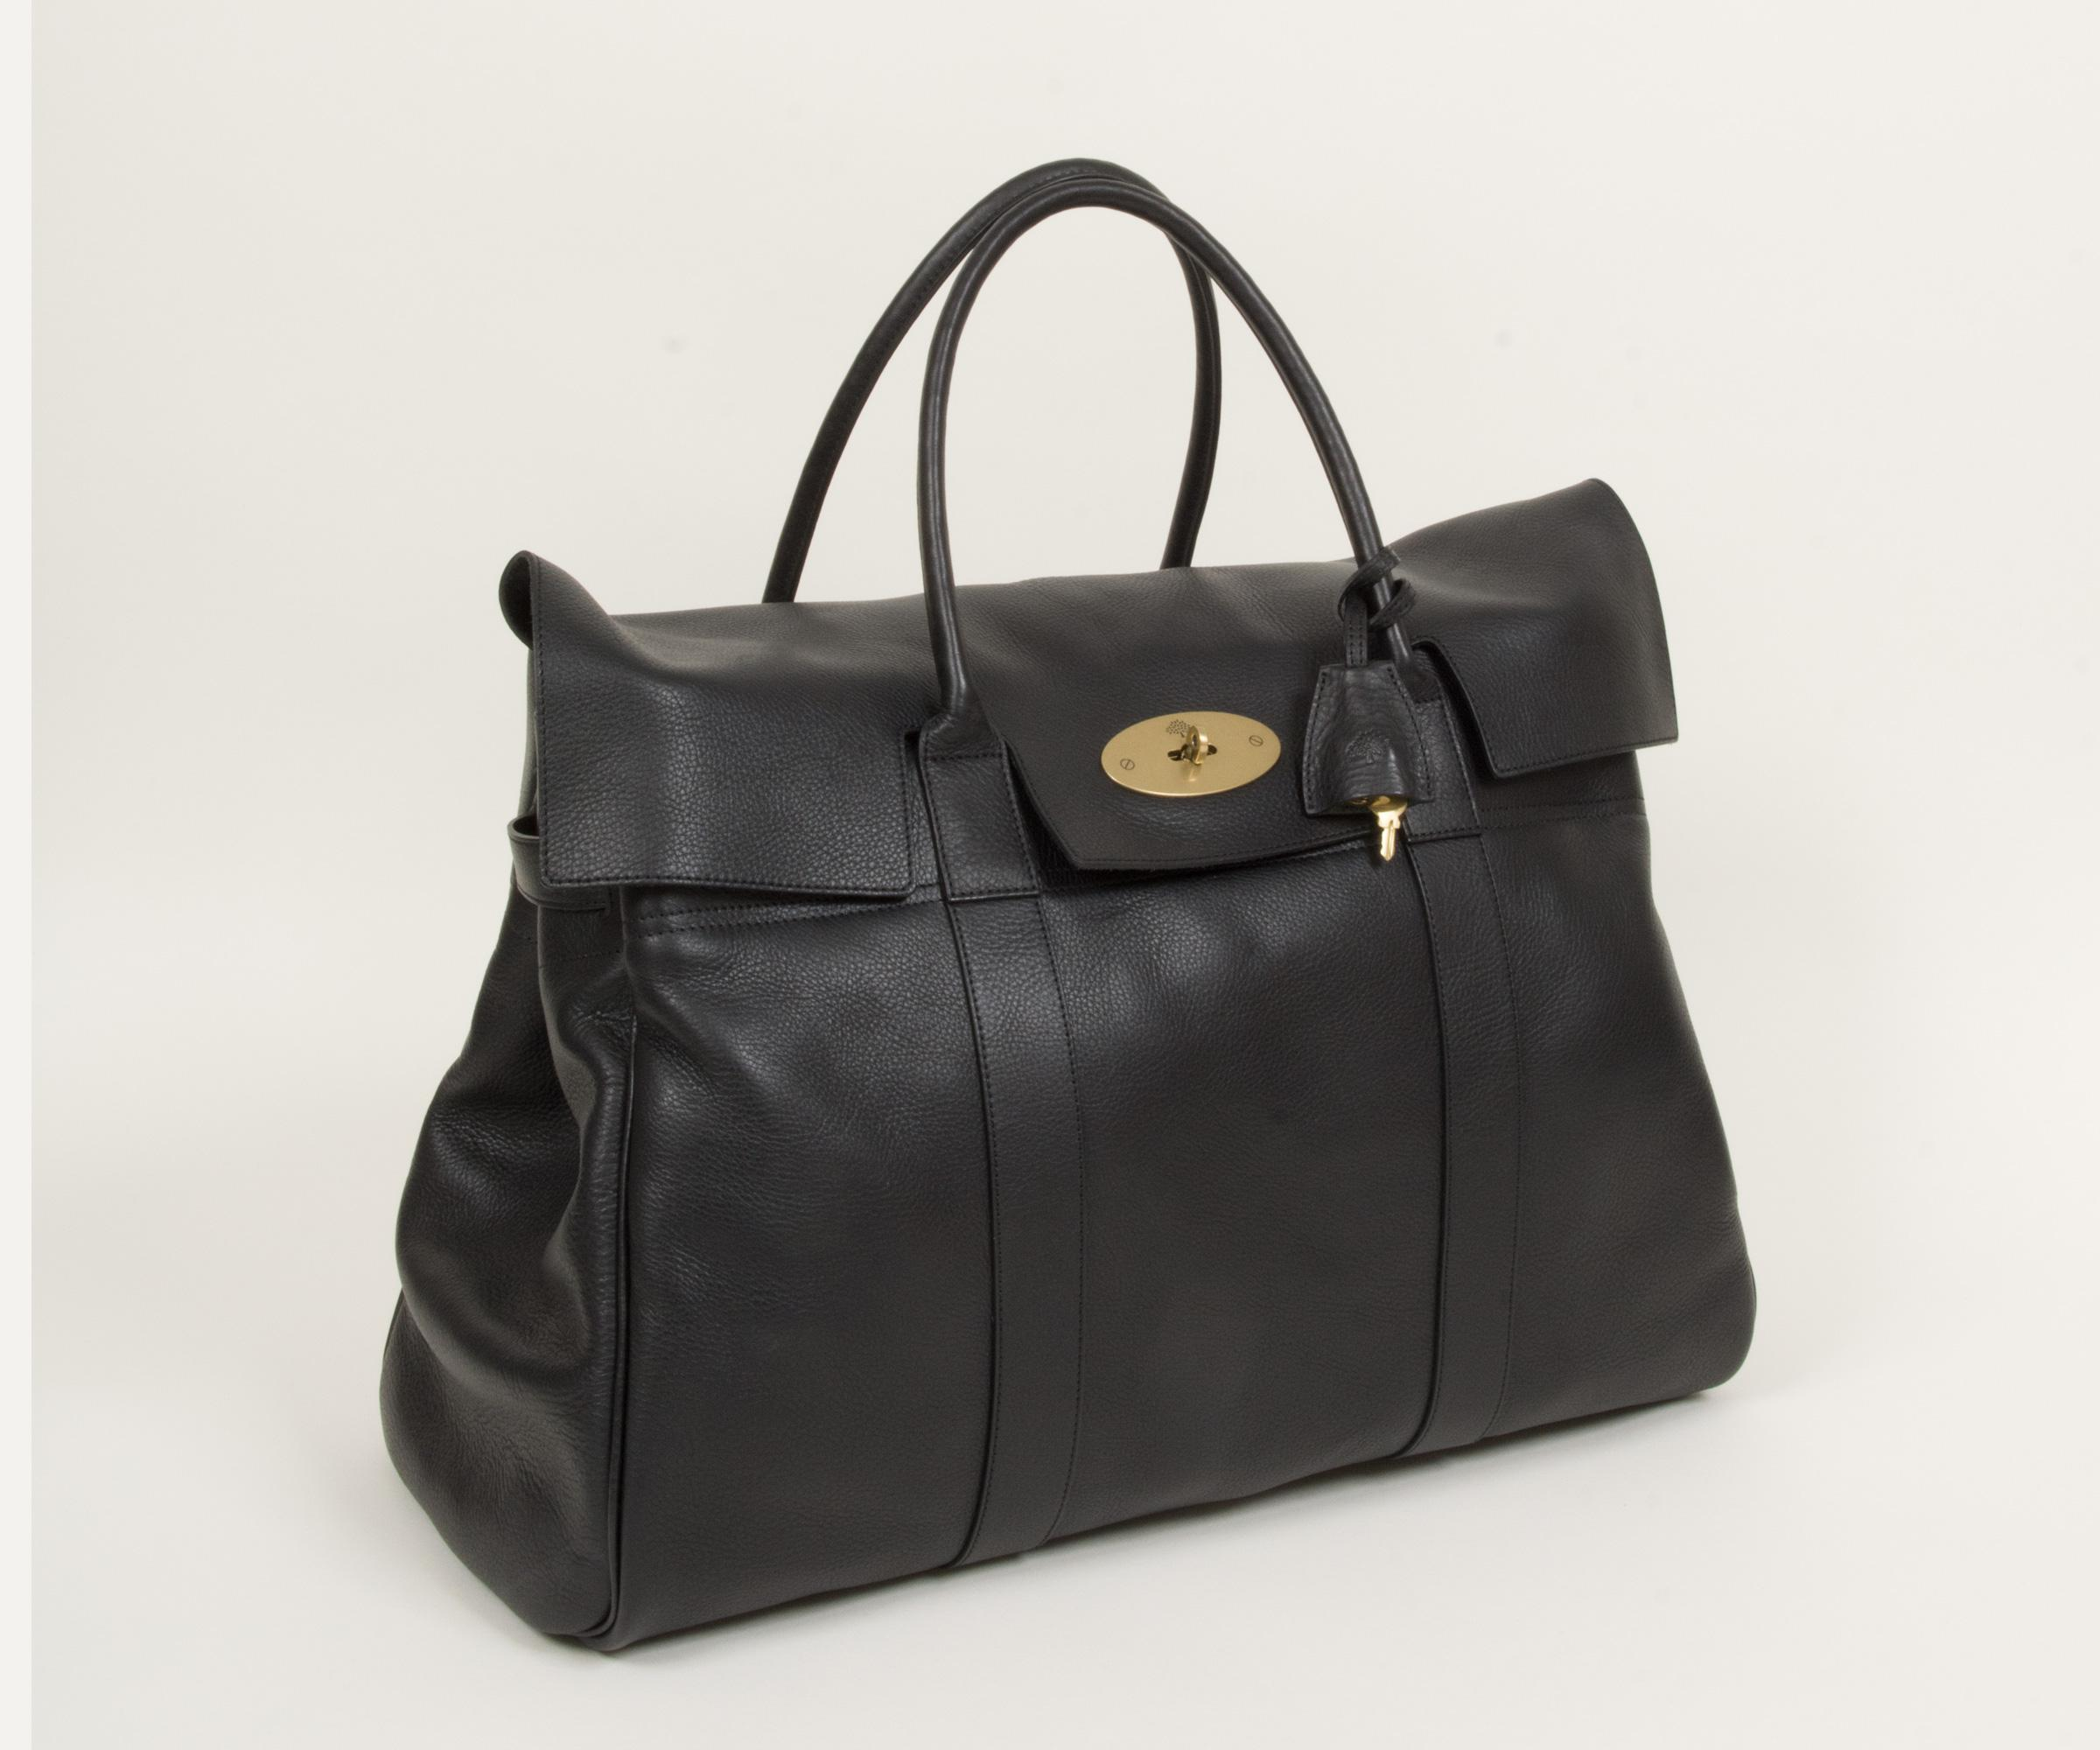 6f43cbd270 Lyst - Mulberry Piccadilly Leather Weekend Bag Black in Black for Men